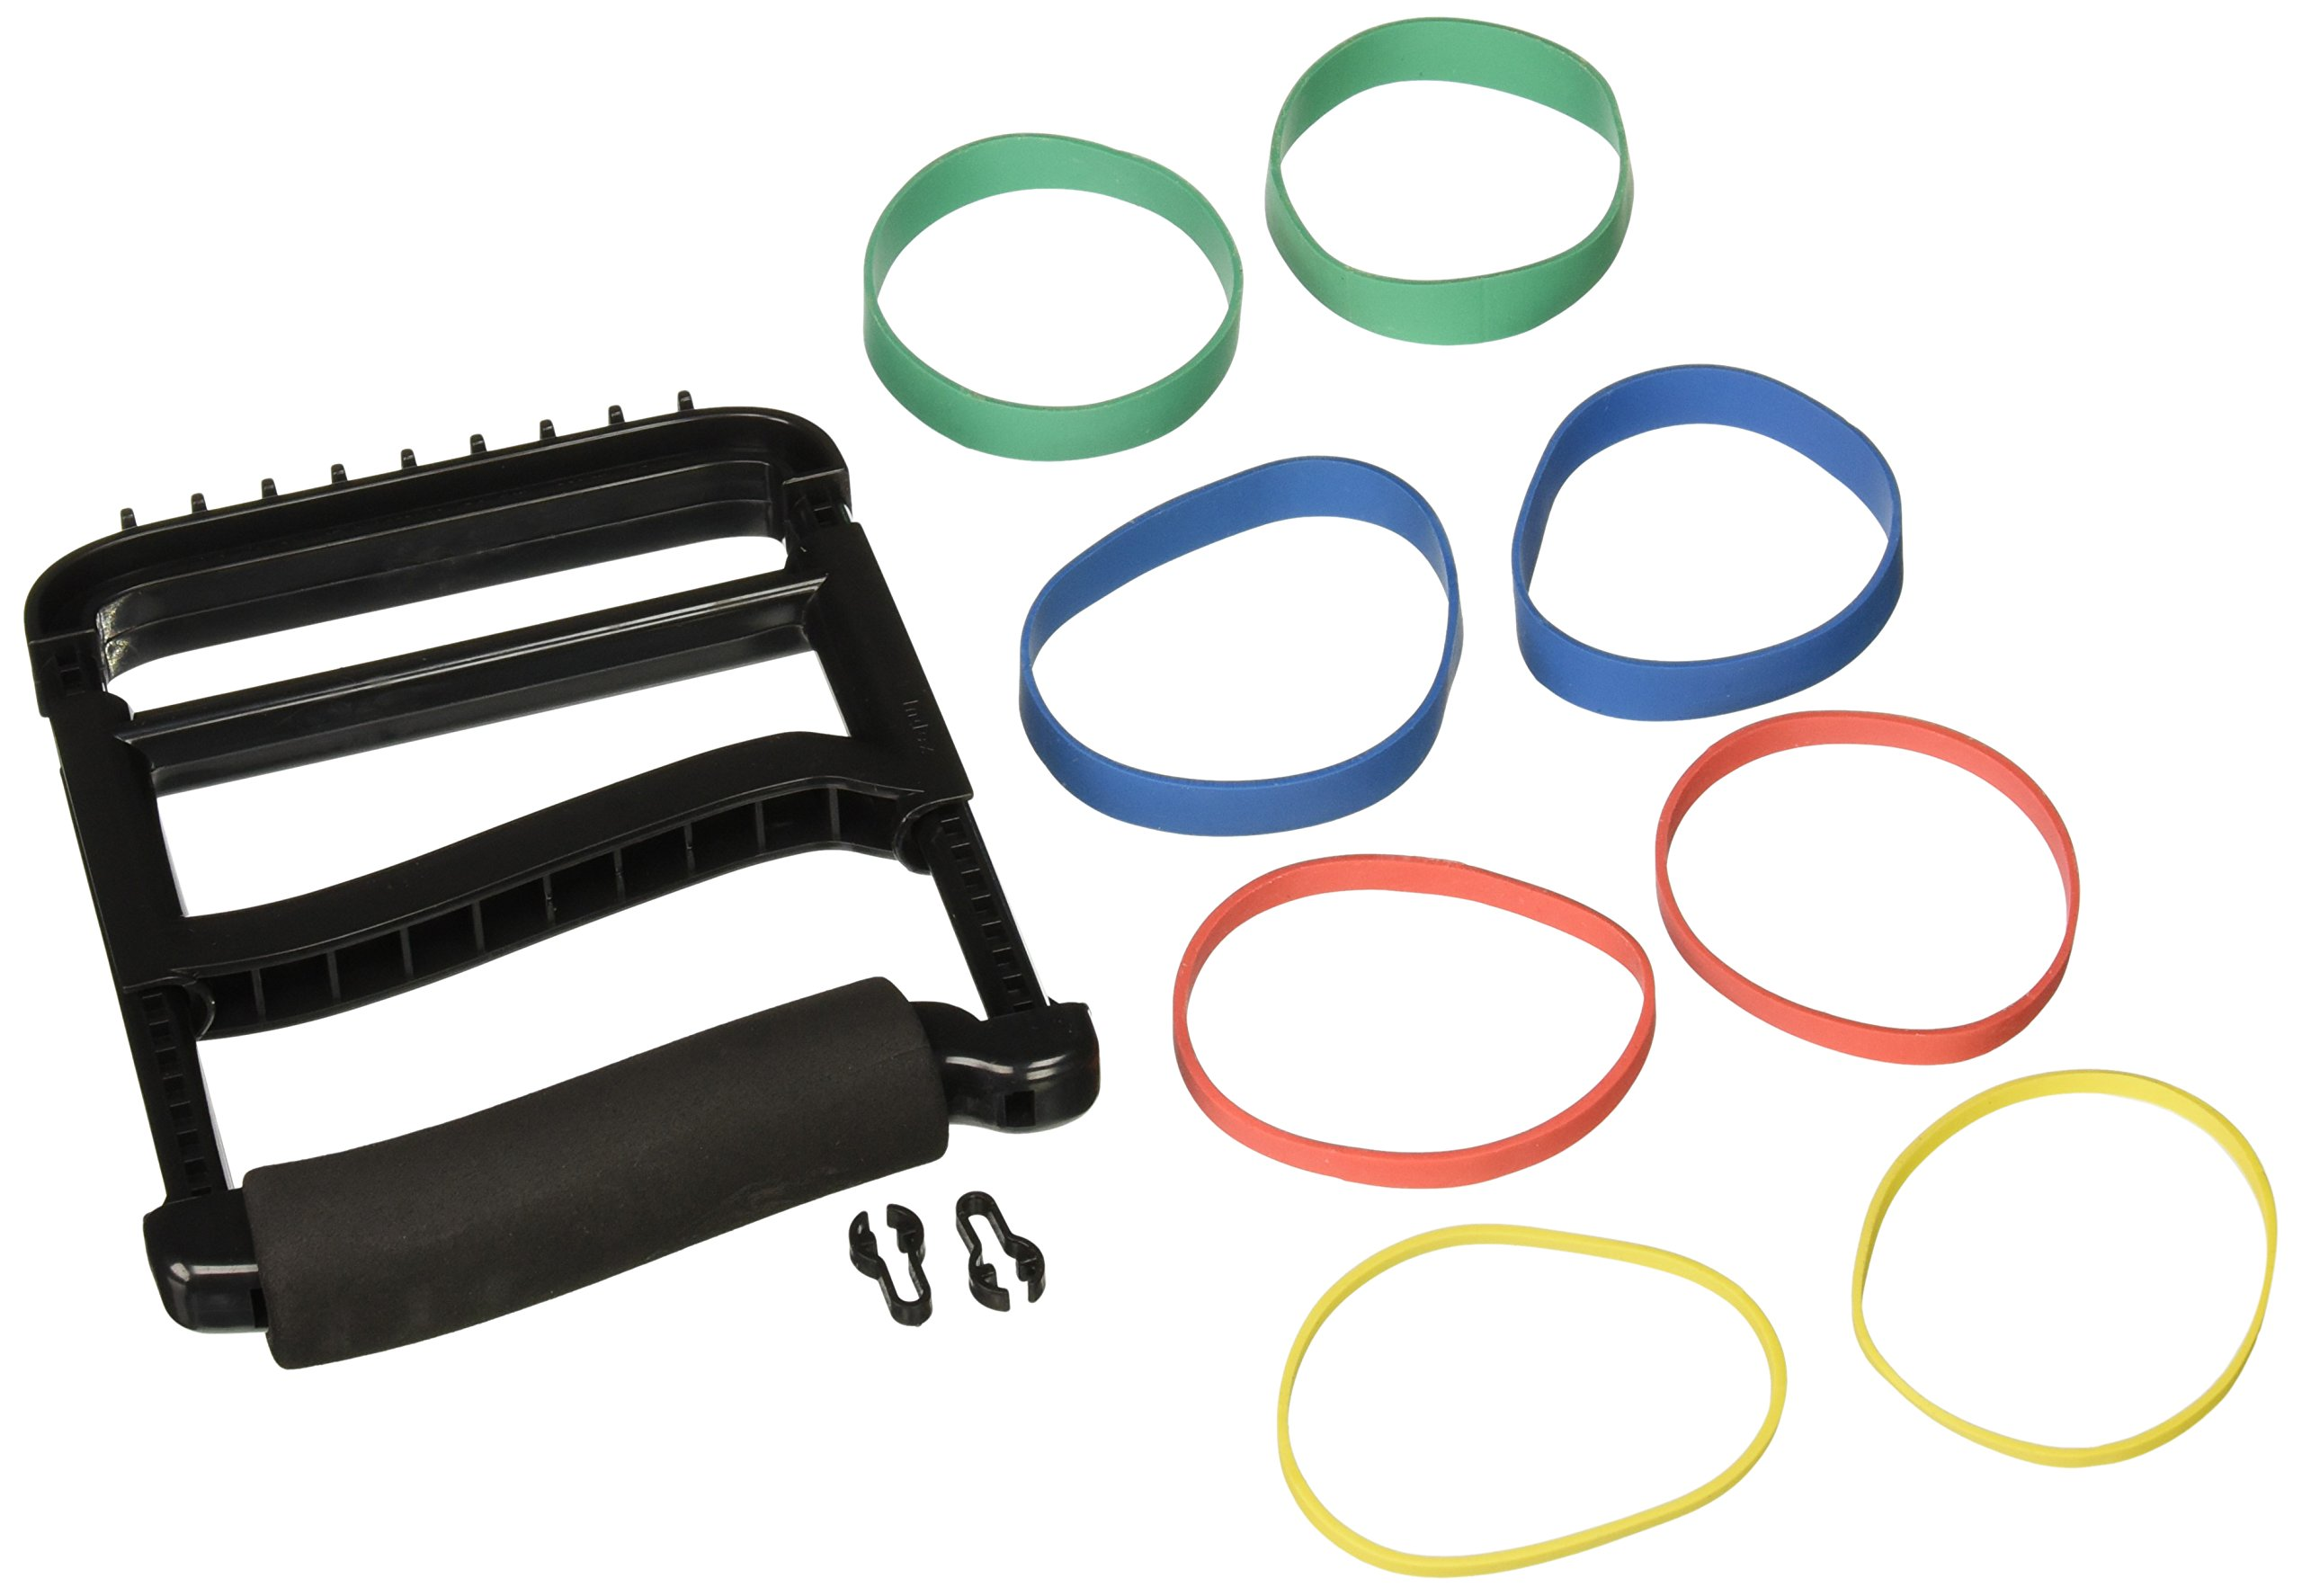 Rolyan Ergonomic Hand Exerciser with Padded Handle, Adjustable Squeeze Tool with 4 Pairs of Rubber Bands of Progressive Resistance for Finger, Hand, and Thumb Strengthening, Improving Weak Grip, Black